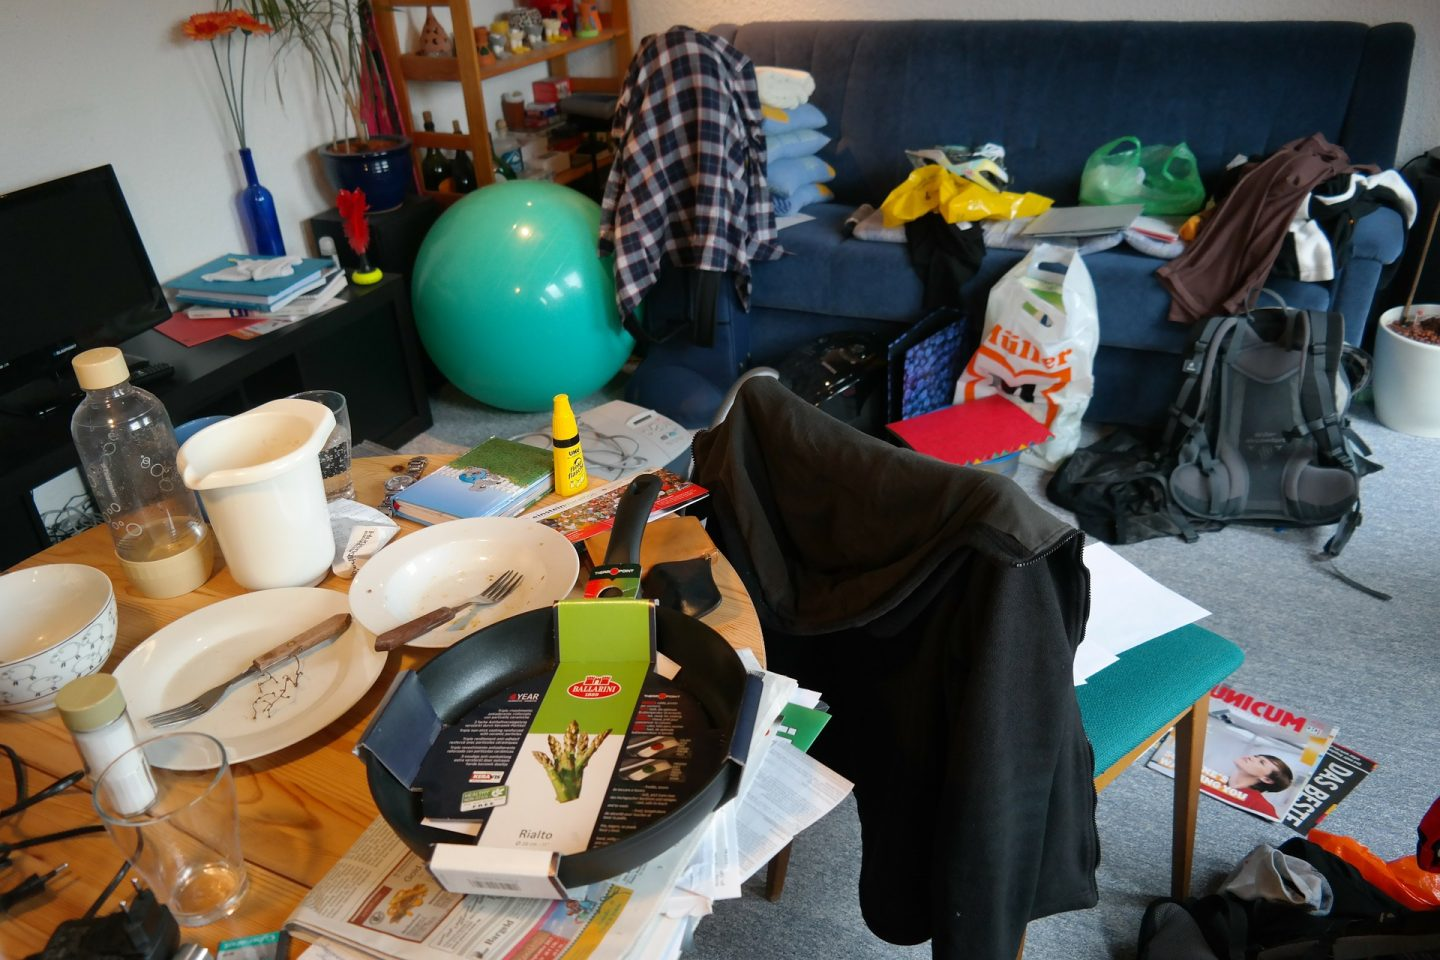 KEEPING YOUR HOME TIDY: A GUIDE TO MANAGING CLUTTER